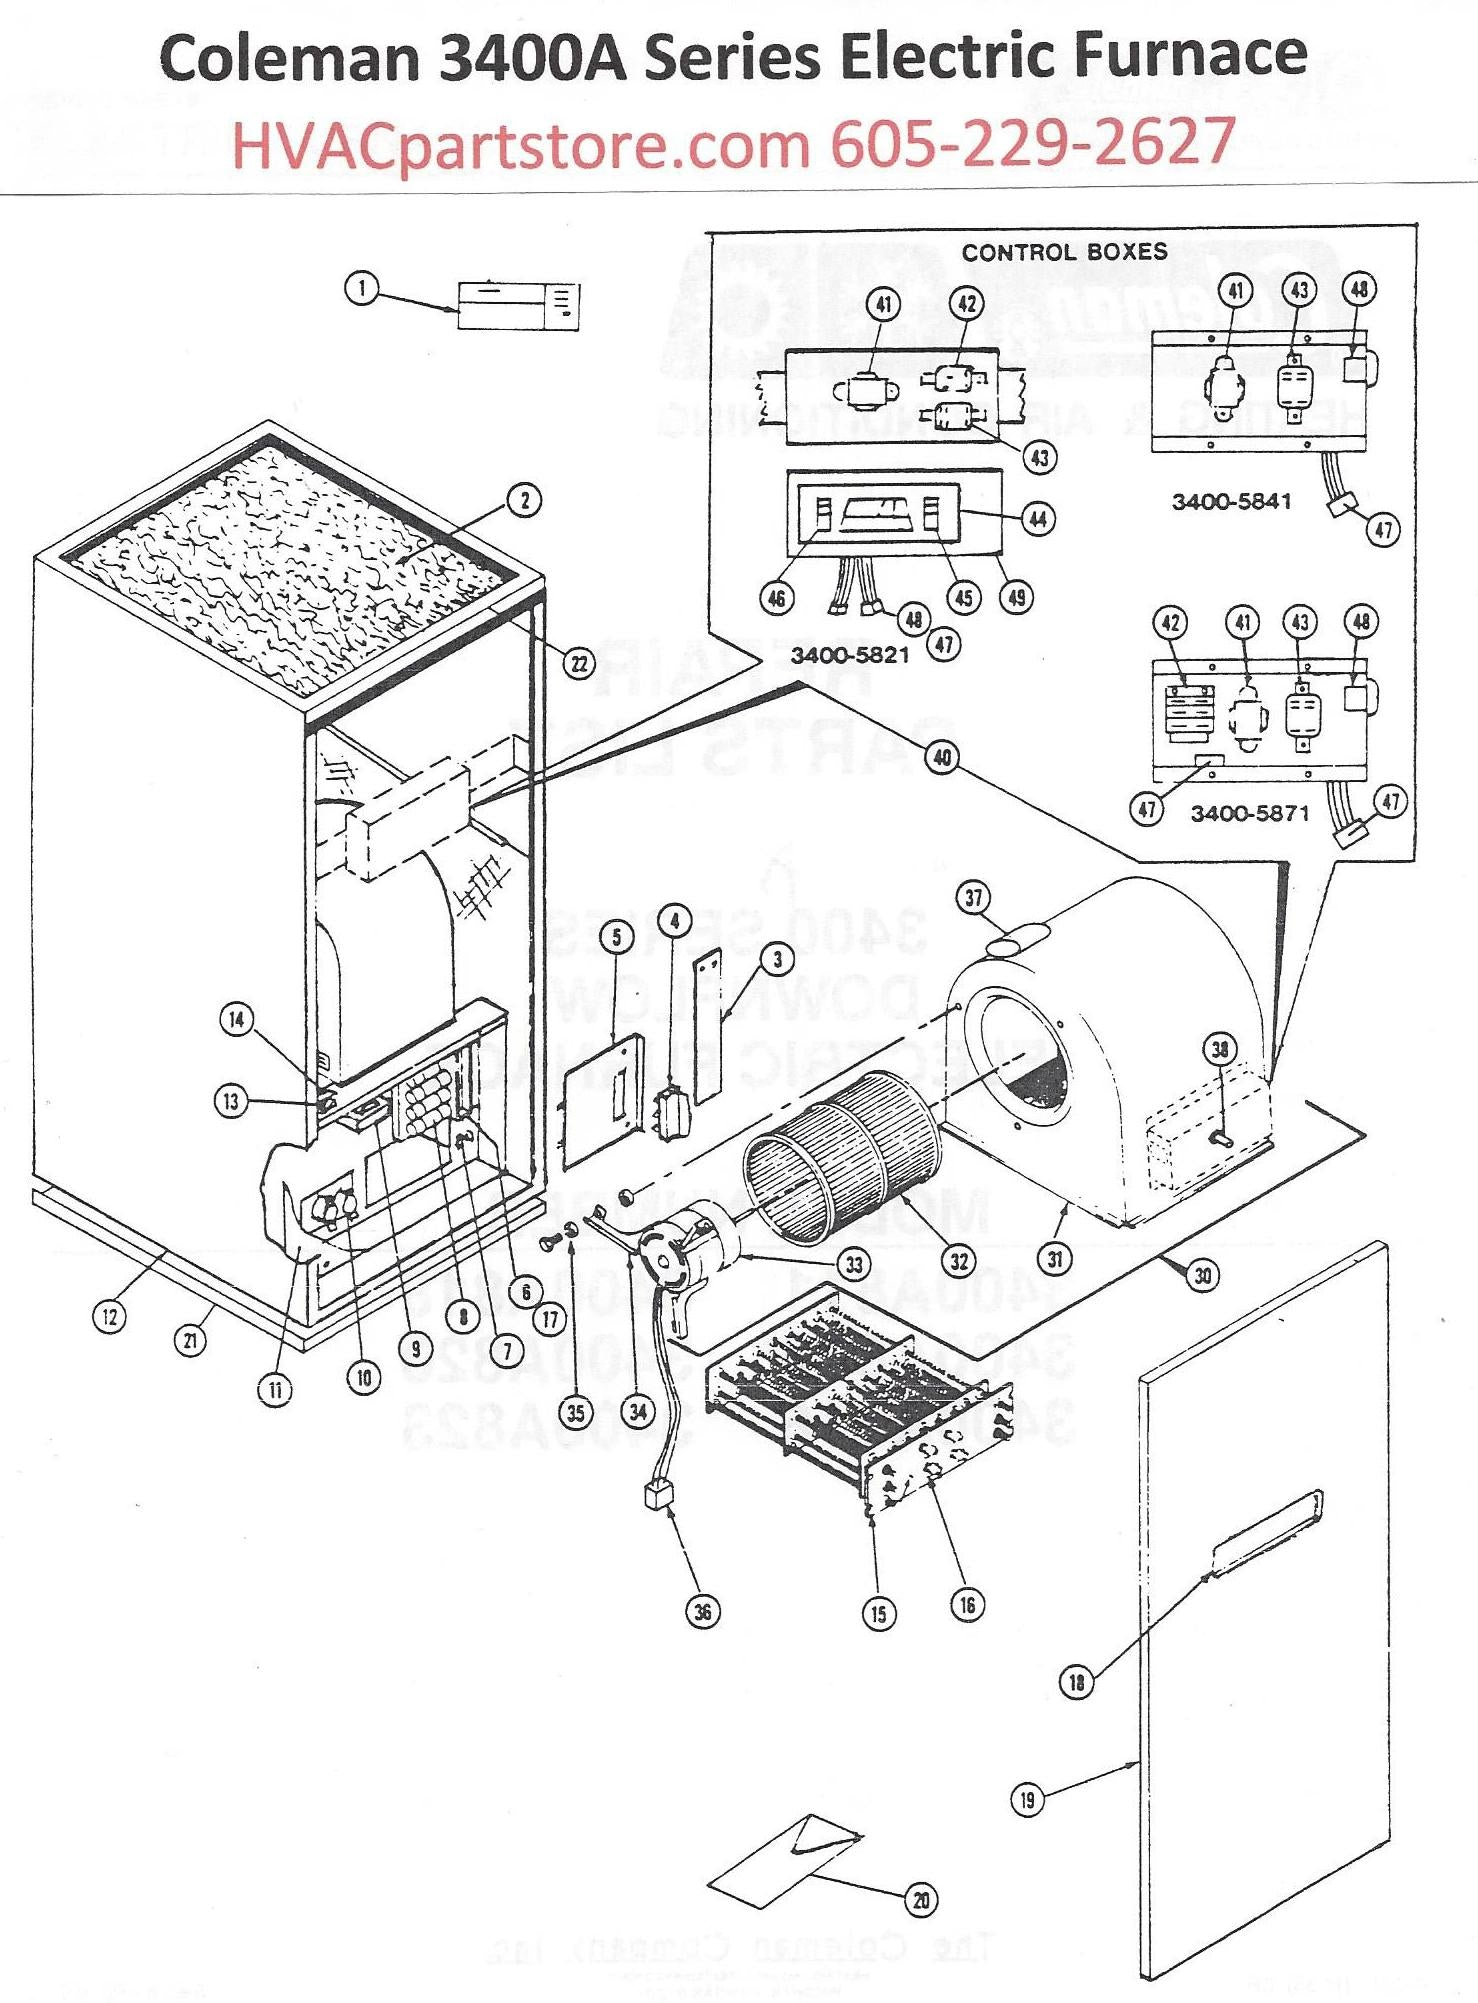 3400a816 coleman electric furnace parts hvacpartstore coleman mobile home electric furnace wiring diagram coleman electric furnace diagram #1